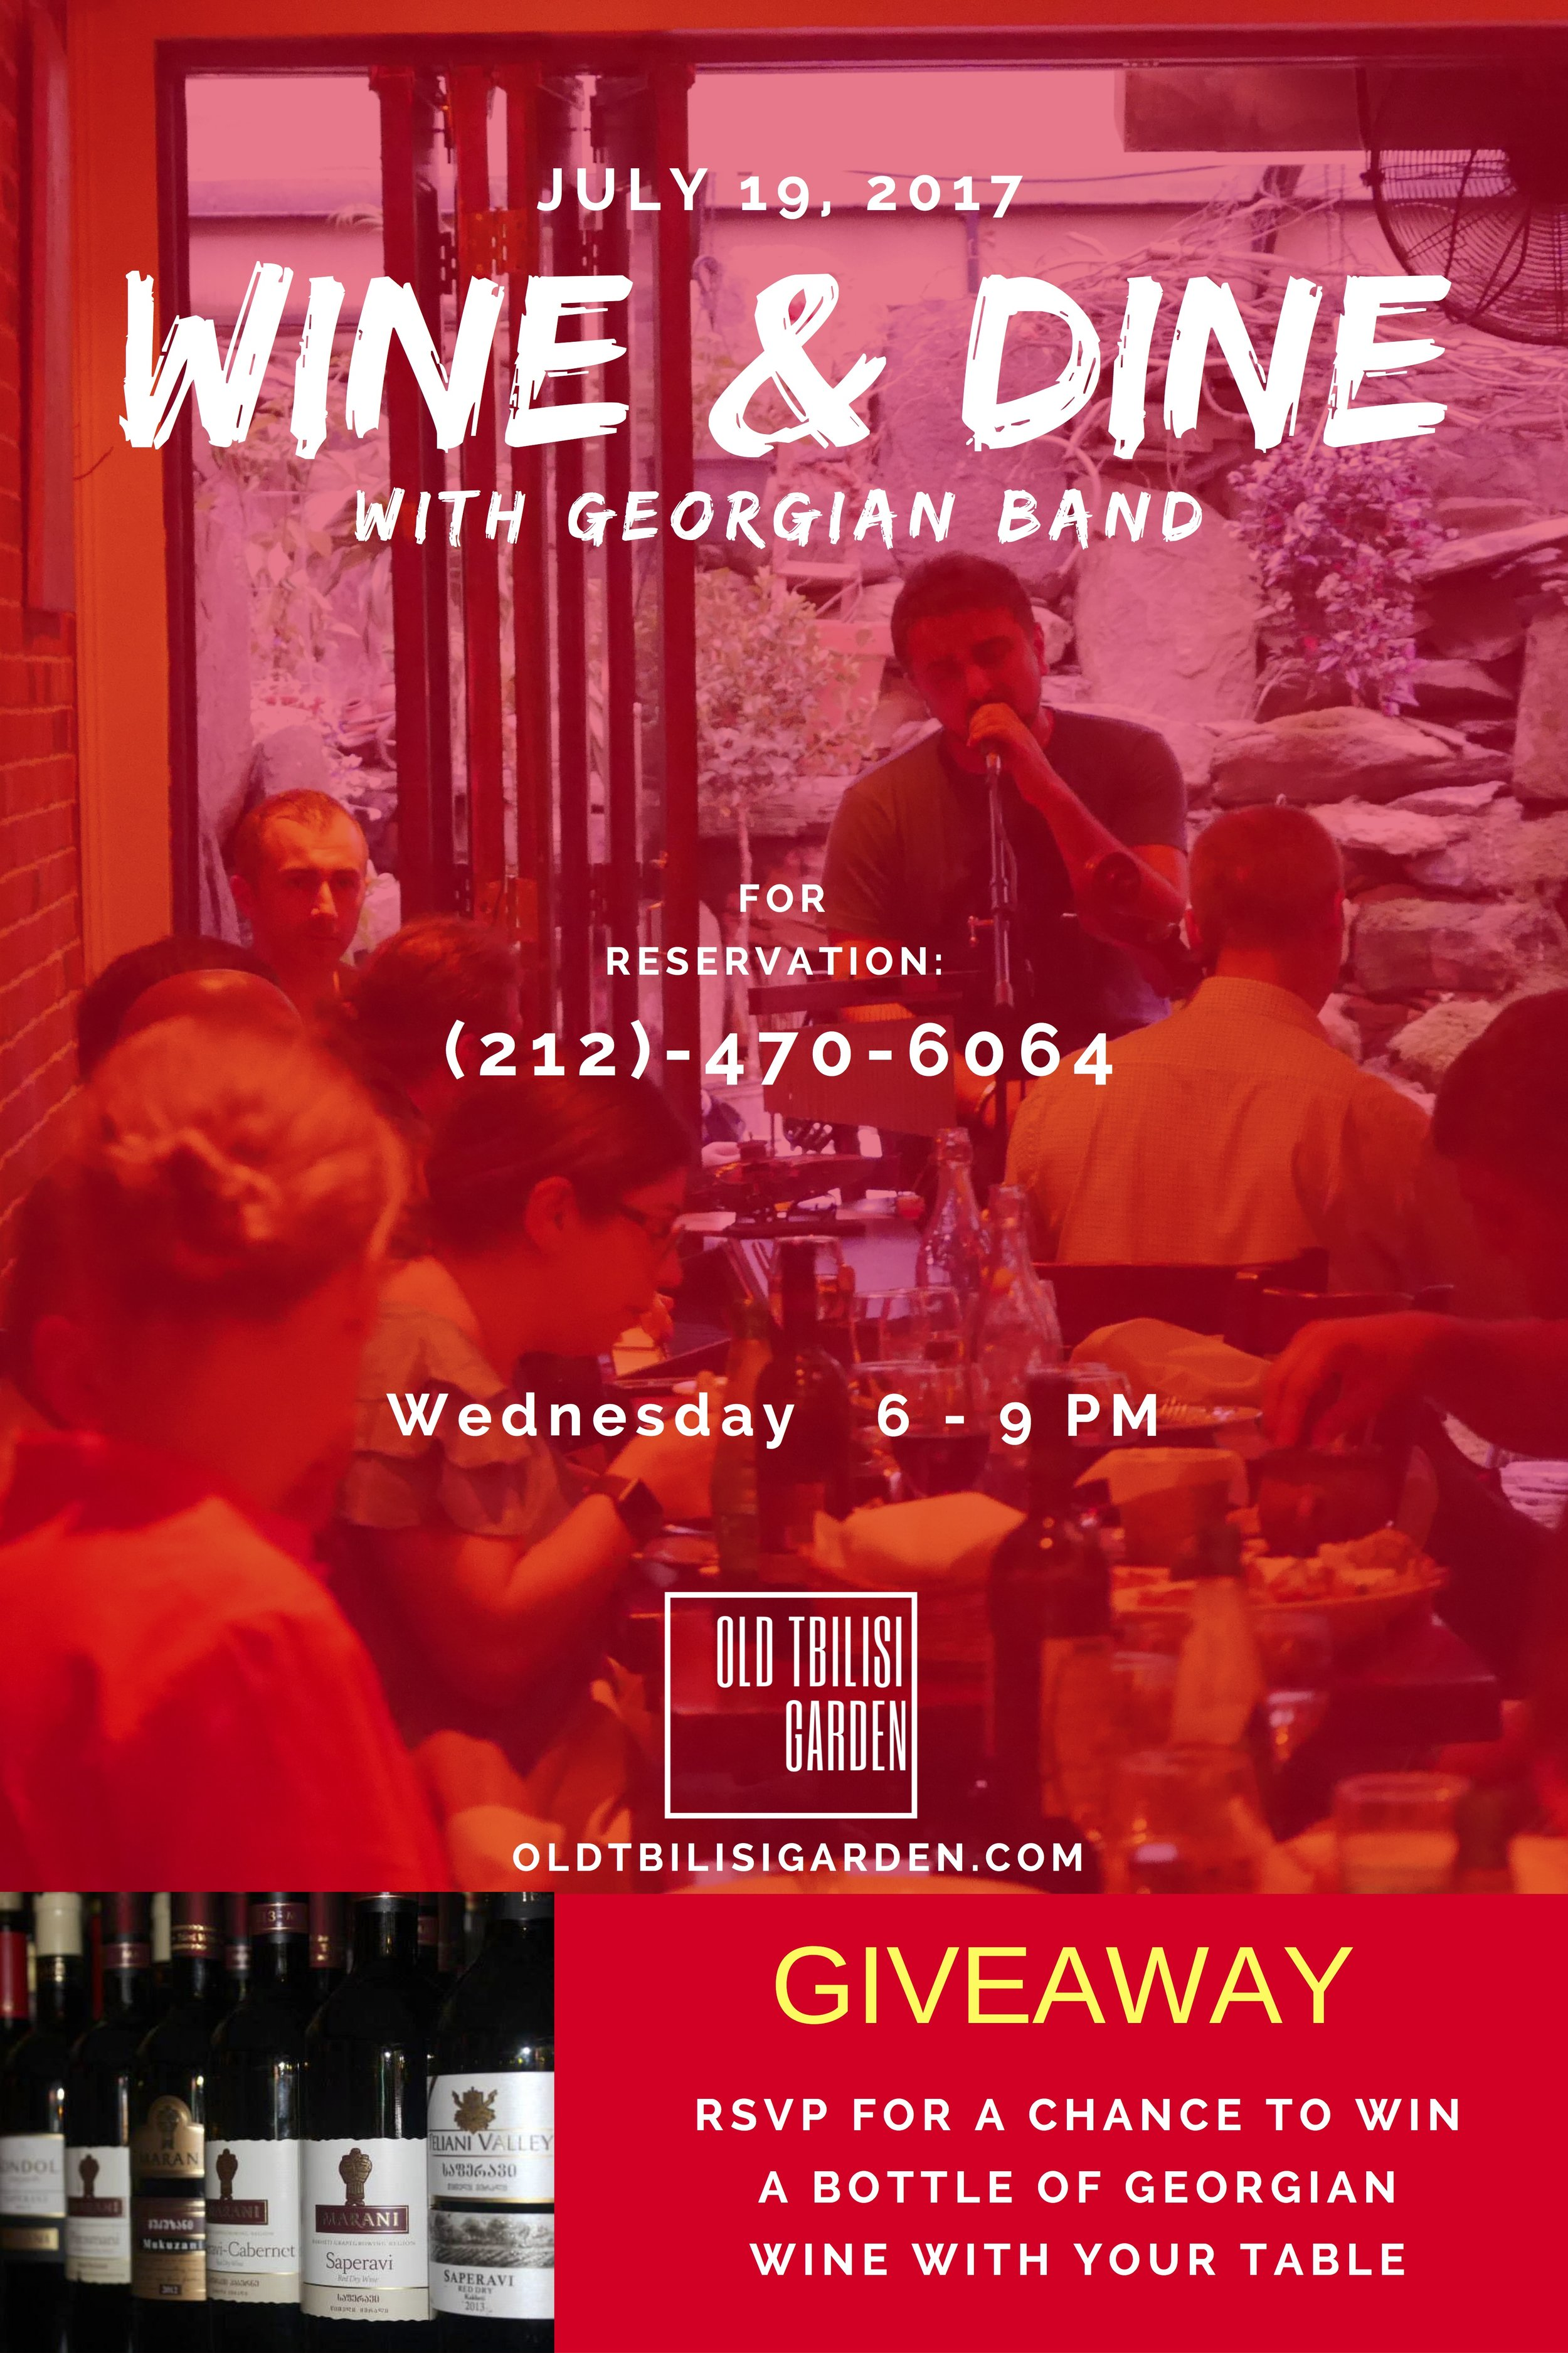 Wine & Dine with Georgian  Band (07/19/2017)   Wed 6-9pm - Come join us for Wine & Dine with Georgian band!*GEORGIAN WINE GIVEAWAY*RSVP for a chance to win a bottle of Georgian wine for your table!Have you tried Georgian wine? Tag any friends who would like to join you to enjoy some delicious Georgian Food, Wine & Music!The Winner will be chosen at random from the resvervation list, an hours before the event.